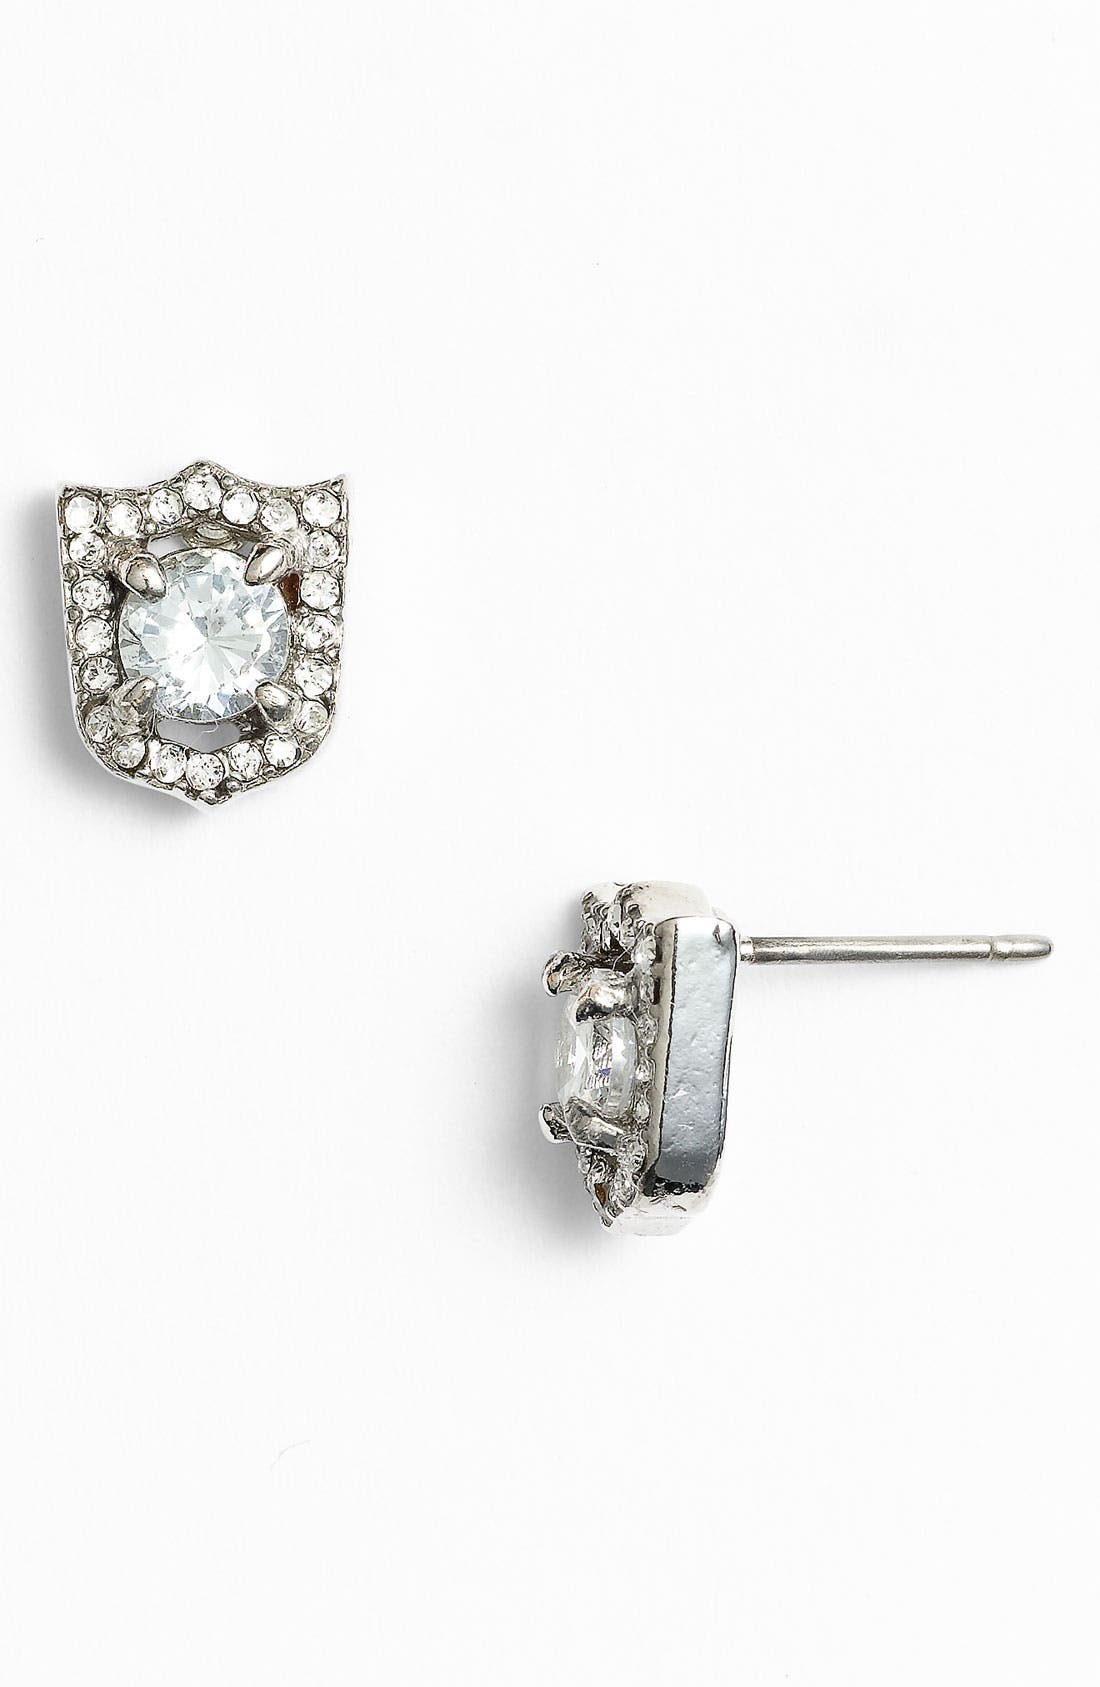 Main Image - Juicy Couture 'Key to the Castle' Shield Stud Earrings